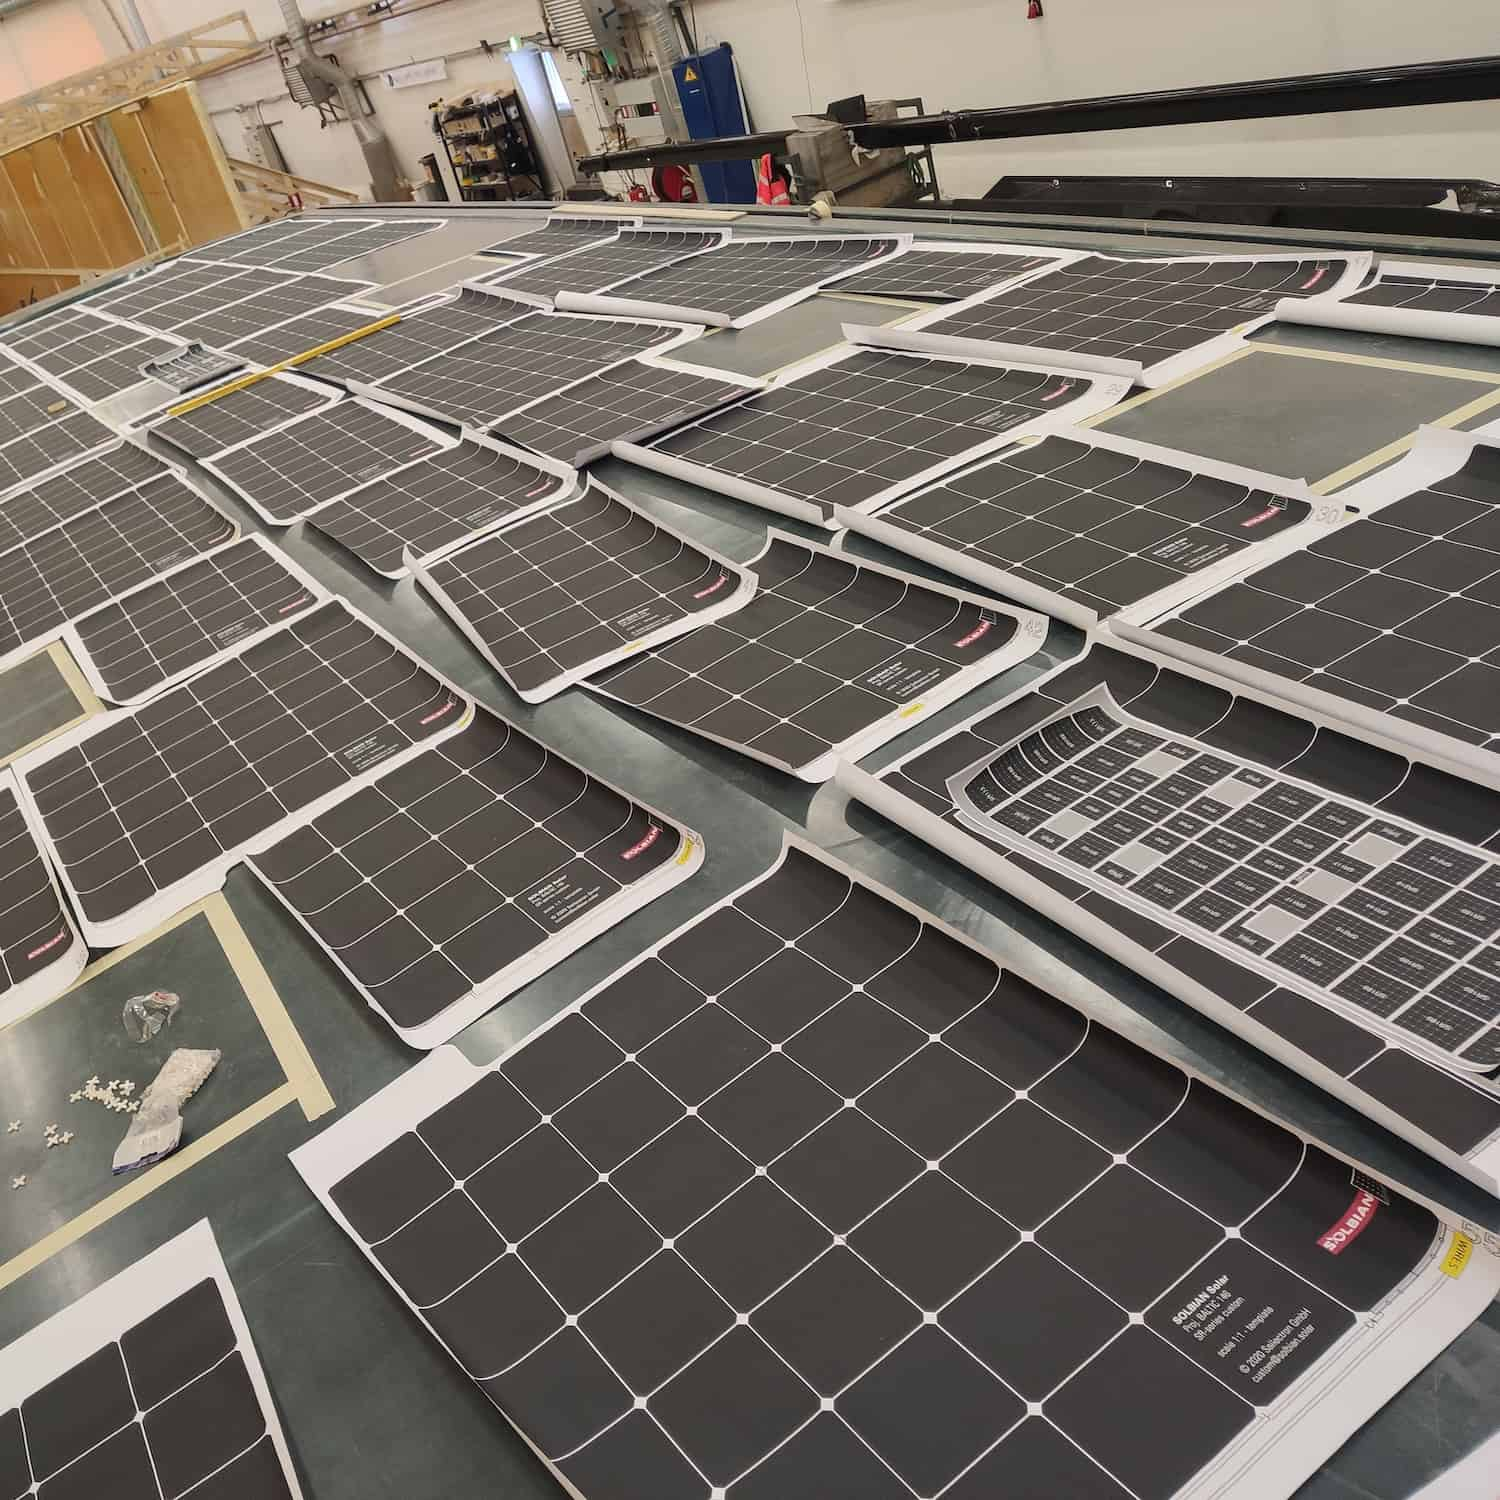 Baltic 146 PATH superyacht Solbian solar photovoltaik largest in the world walkable custom-made bespoke yacht sailing templates